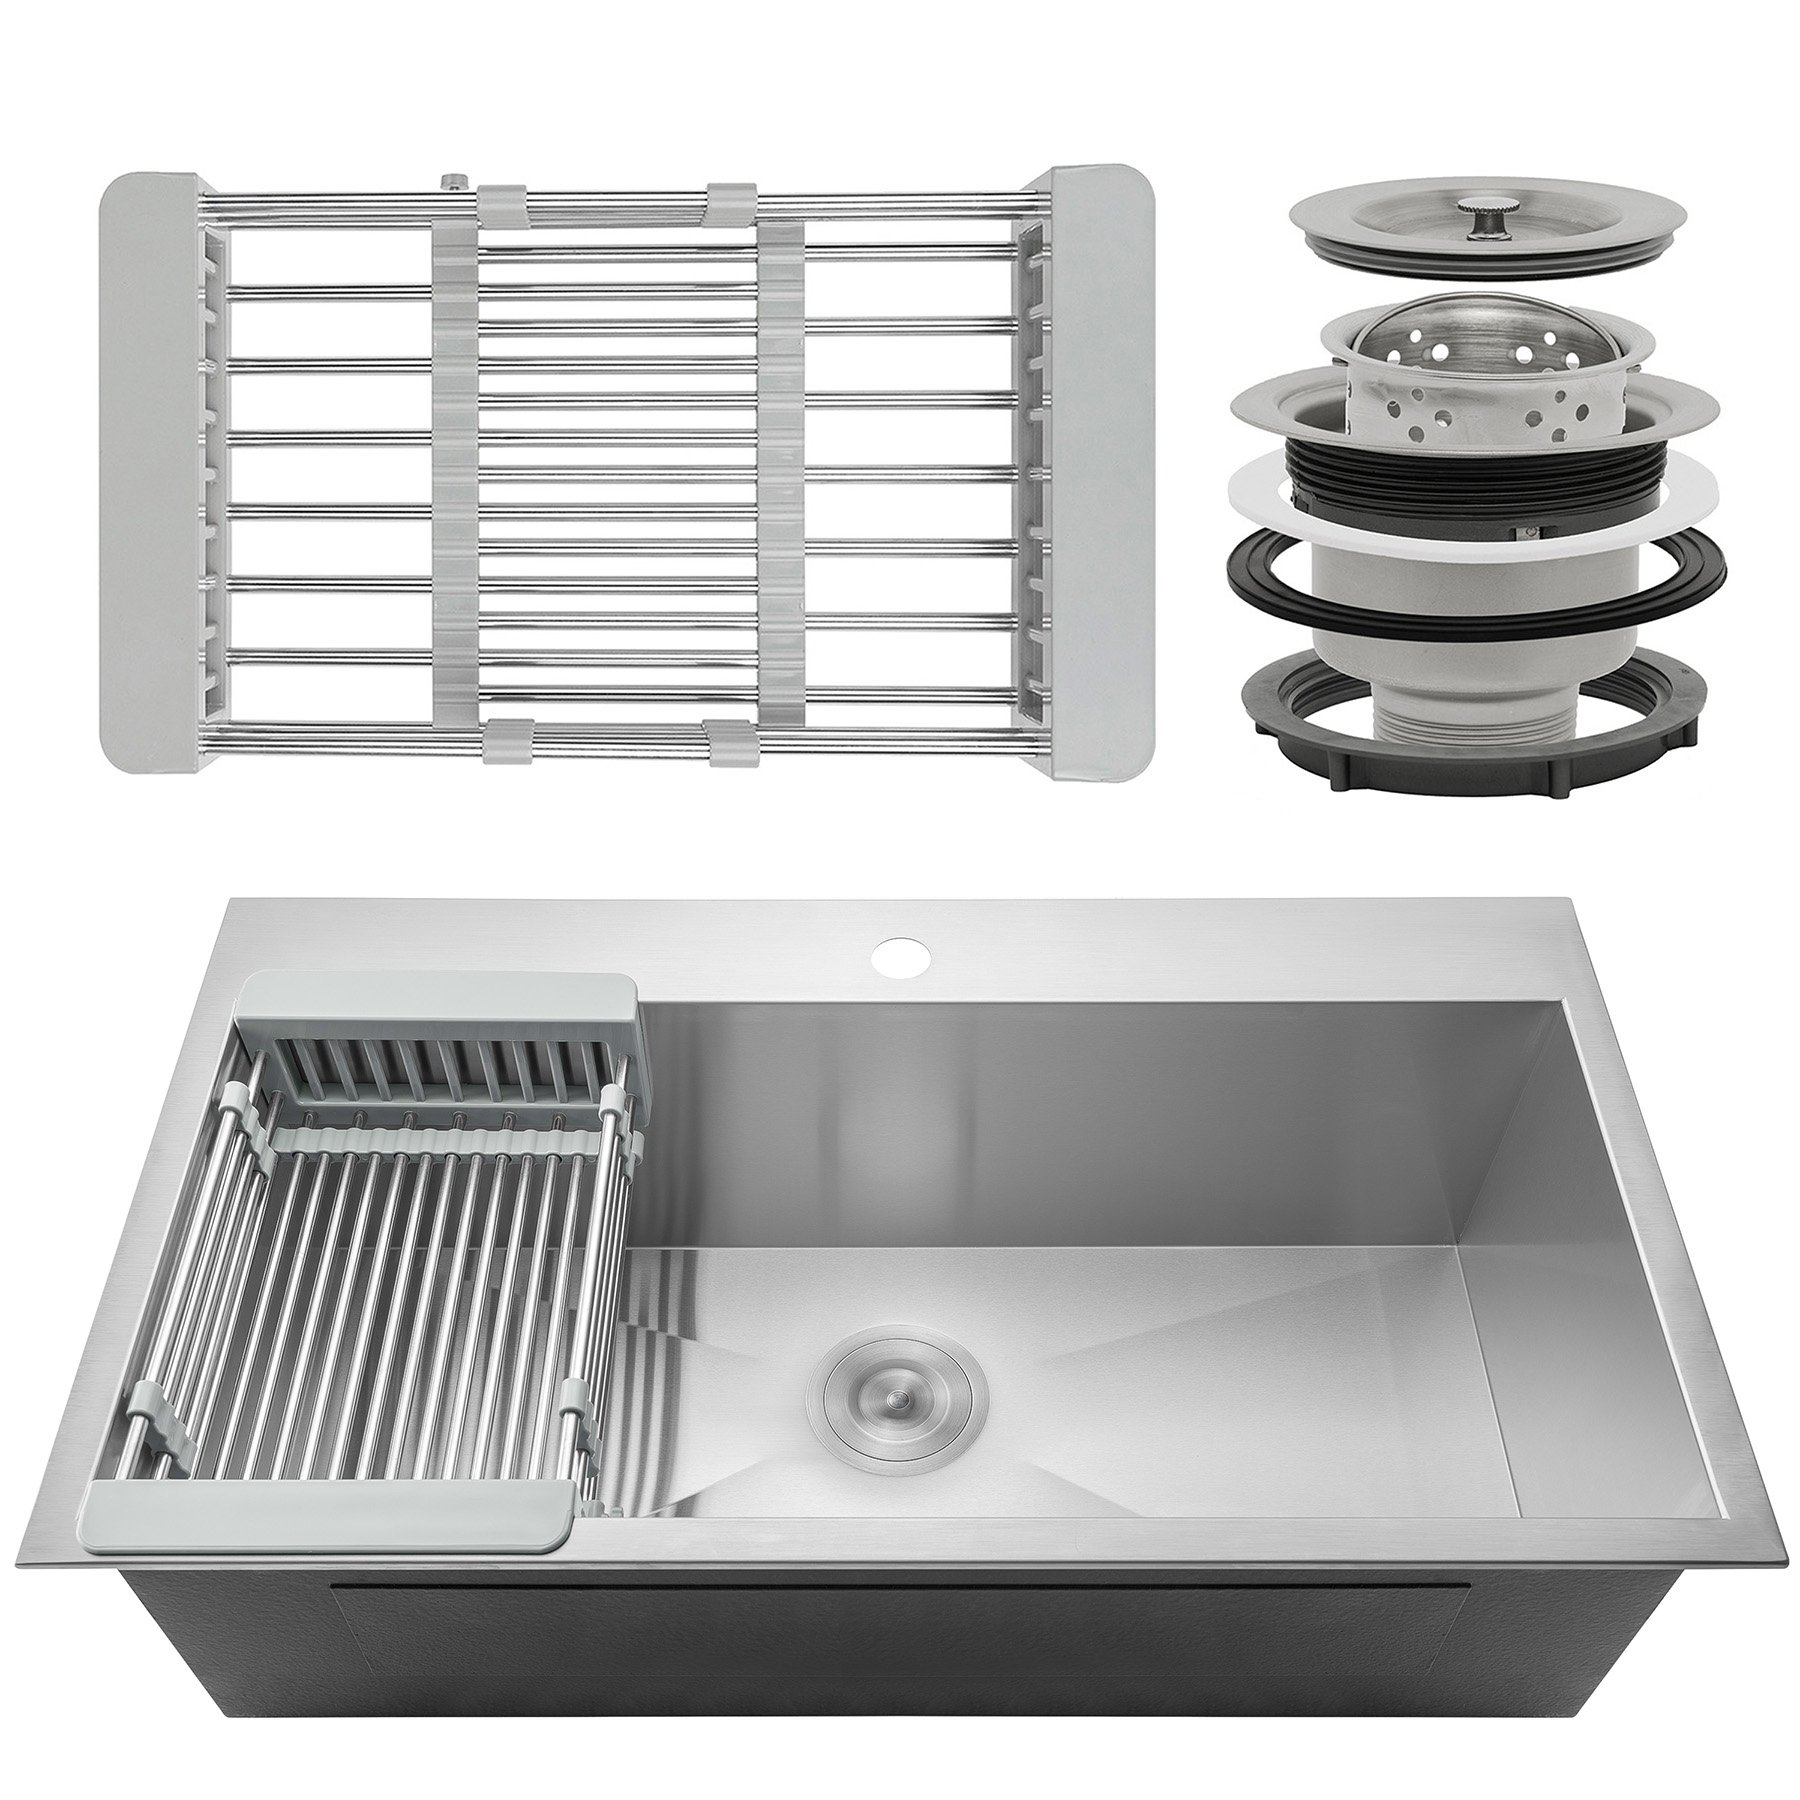 Firebird 33'' x 22'' x 9'' Single Bowl 18 Gauge Handmade Stainless Steel Topmount Drop-In Kitchen Sink w/ Adjustable Dish Tray & Drain by Firebird